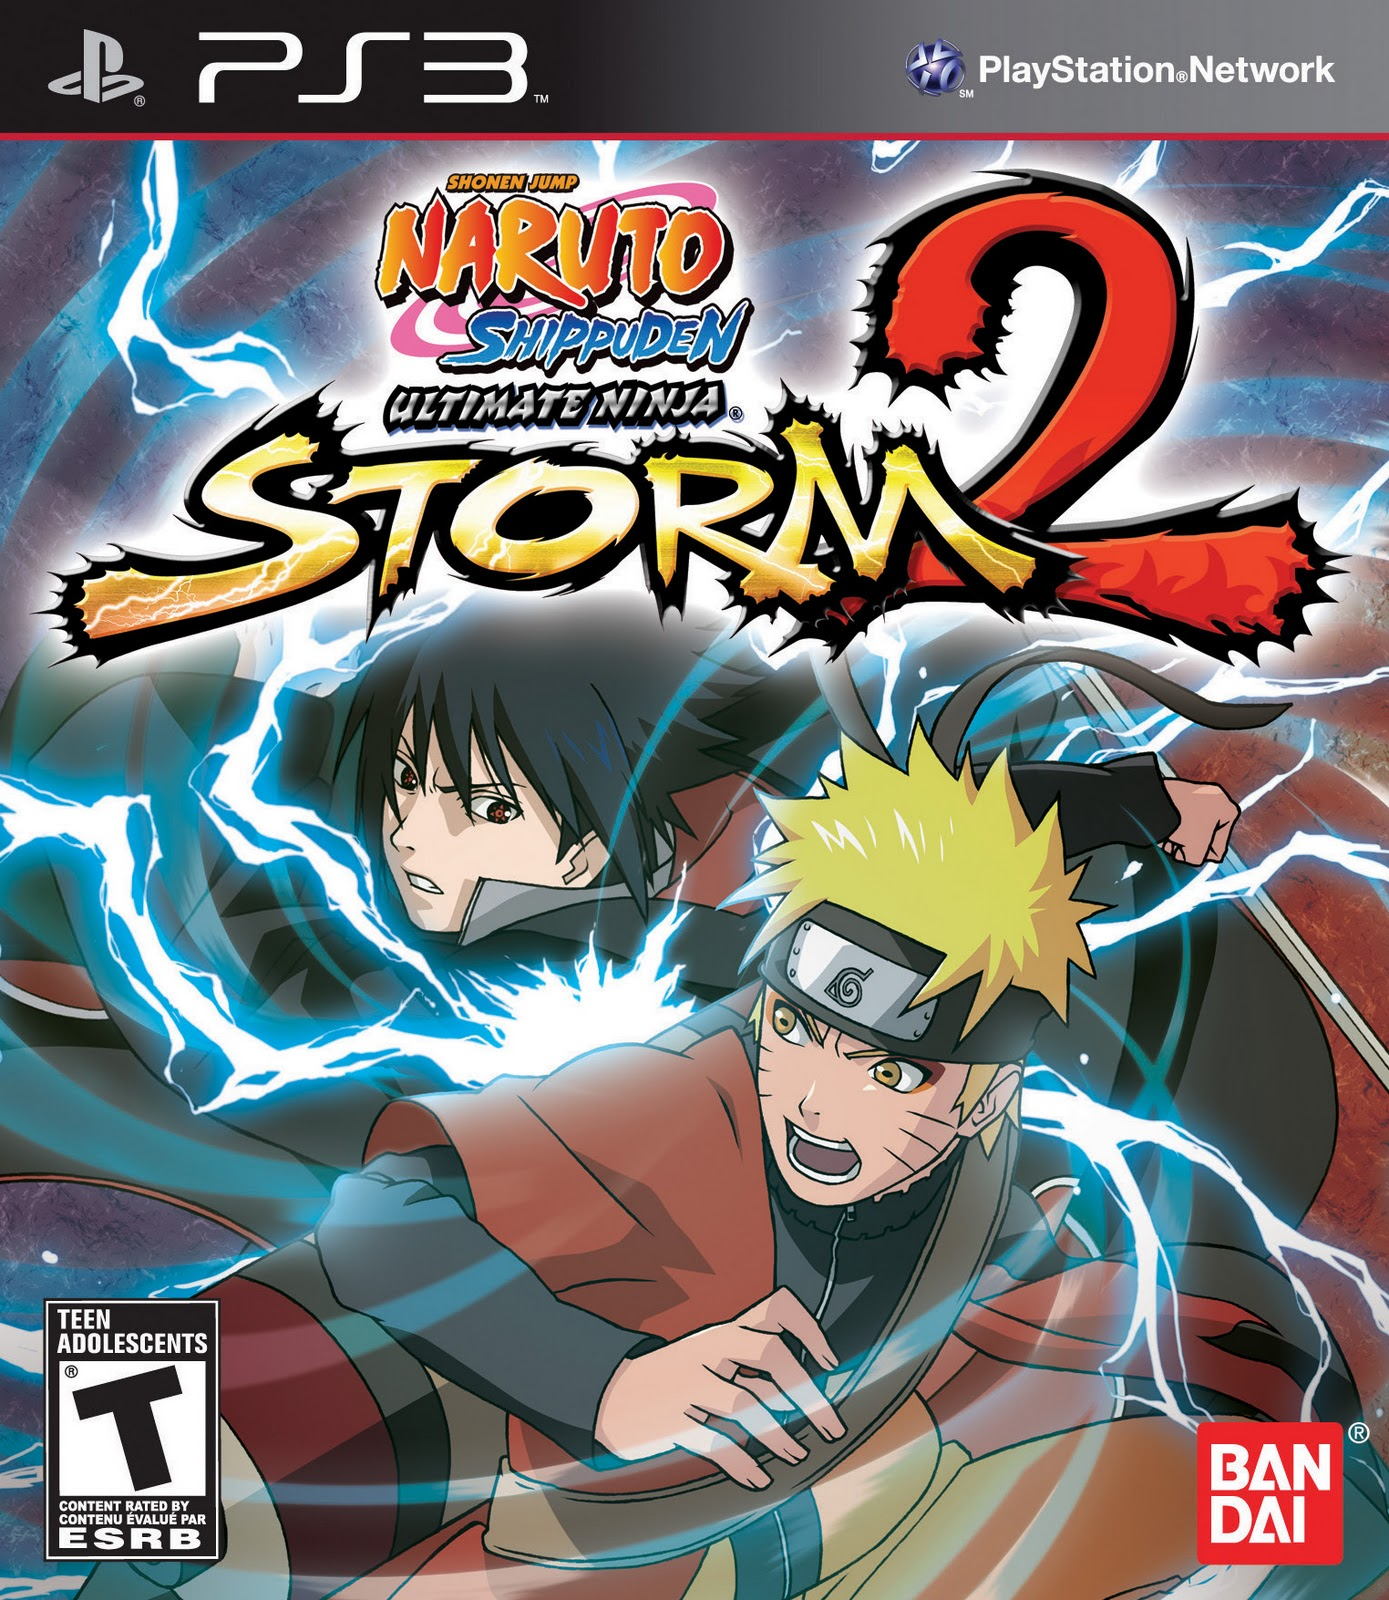 Naruto Shippuden: Ultimate Ninja Storm 2 Review - 9.0